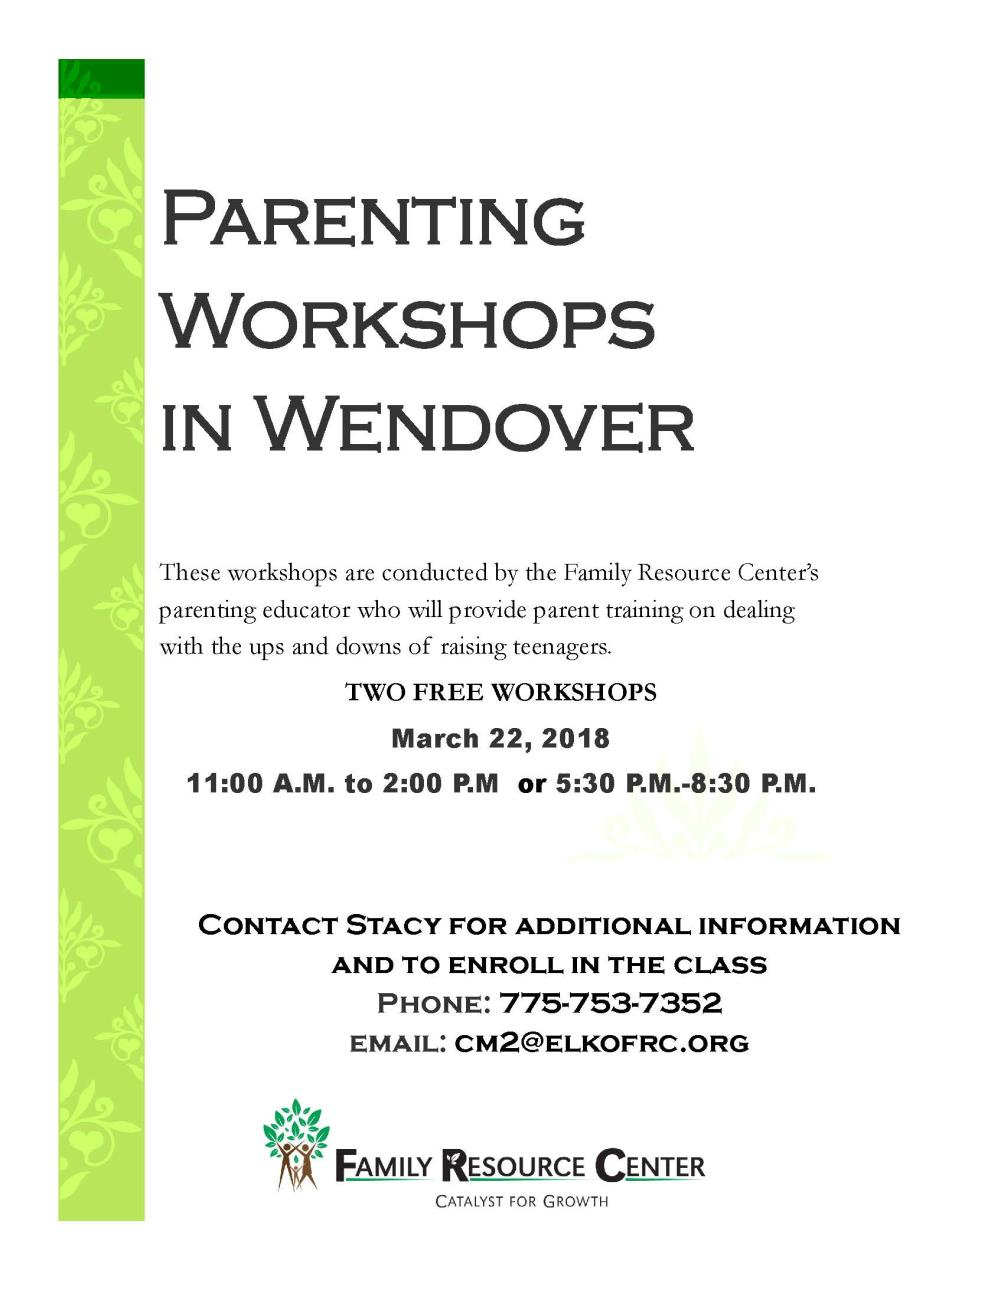 FRCNN Wendover Parent Education March 2018